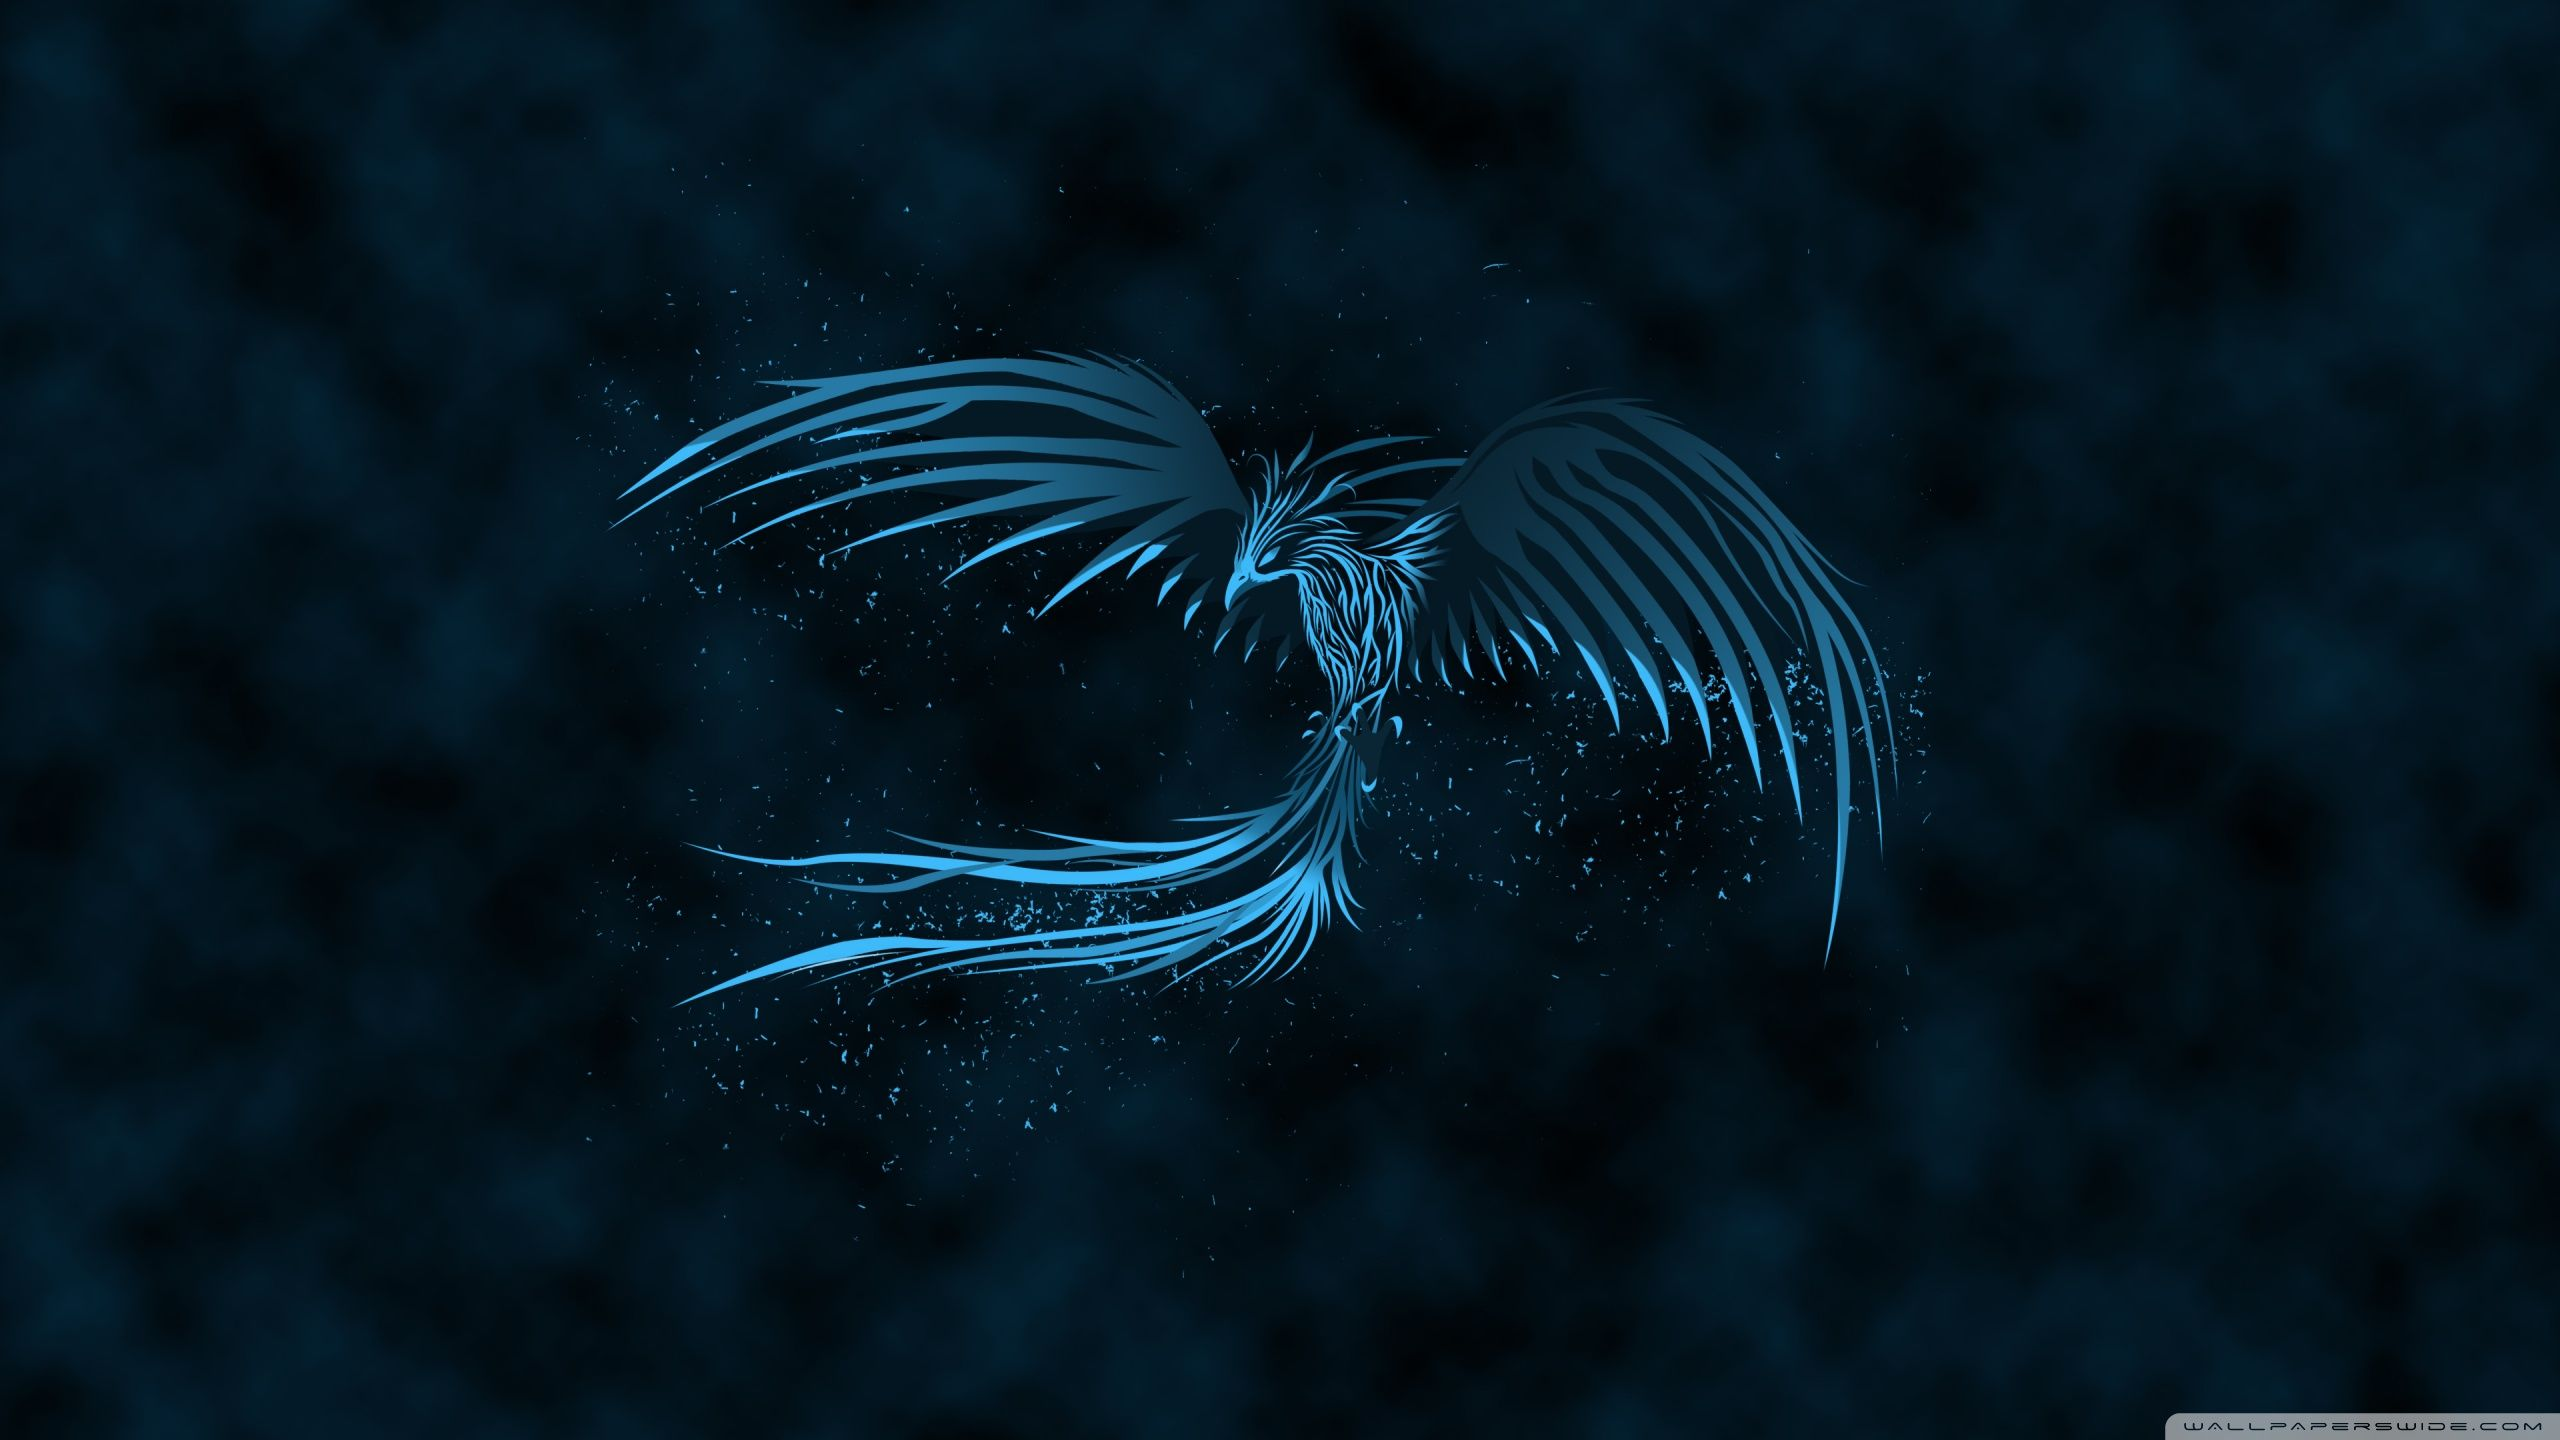 Blue Phoenix HD desktop wallpaper Widescreen Mobile